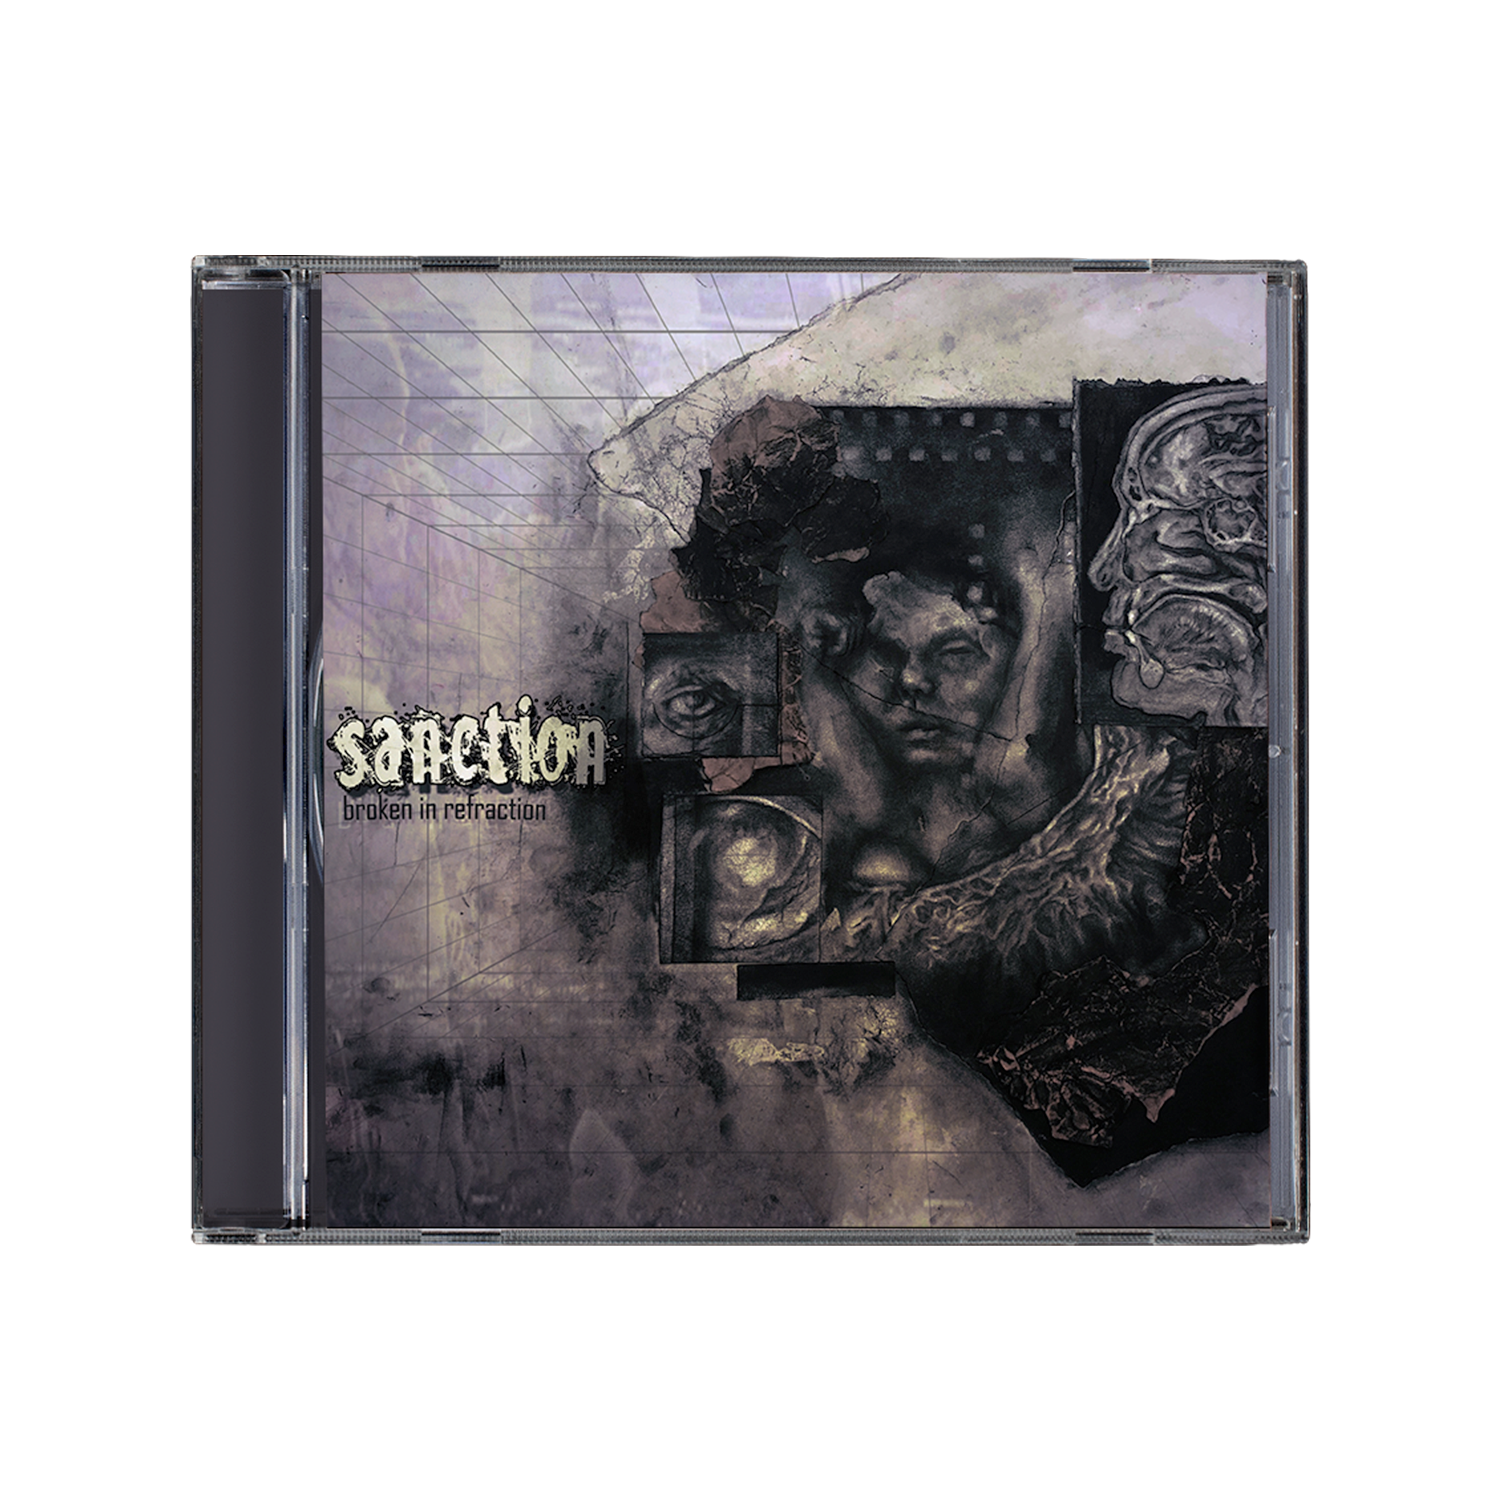 Sanction 'Broken In Refraction' CD